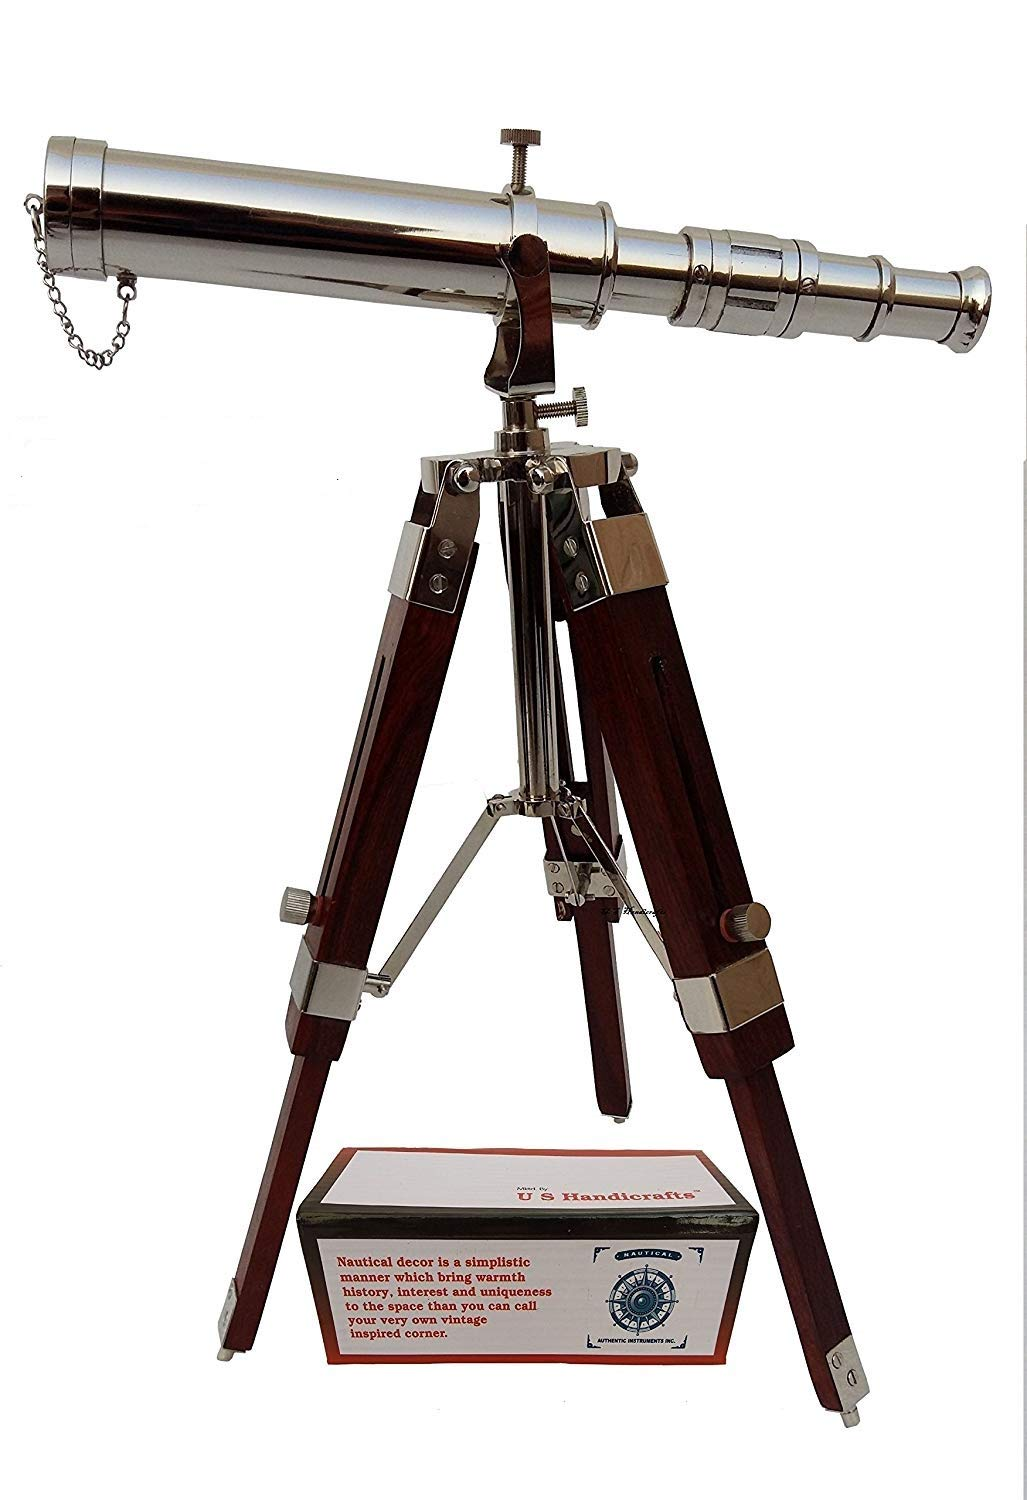 Vintage Brass Nickle Telescope on Tripod Stand/Chrome Desktop Telescope for Home Decor & Table Accessory Nautical Spyglass Telescope for Navy and Outdoor Adventures. by US HANDICRAFTS